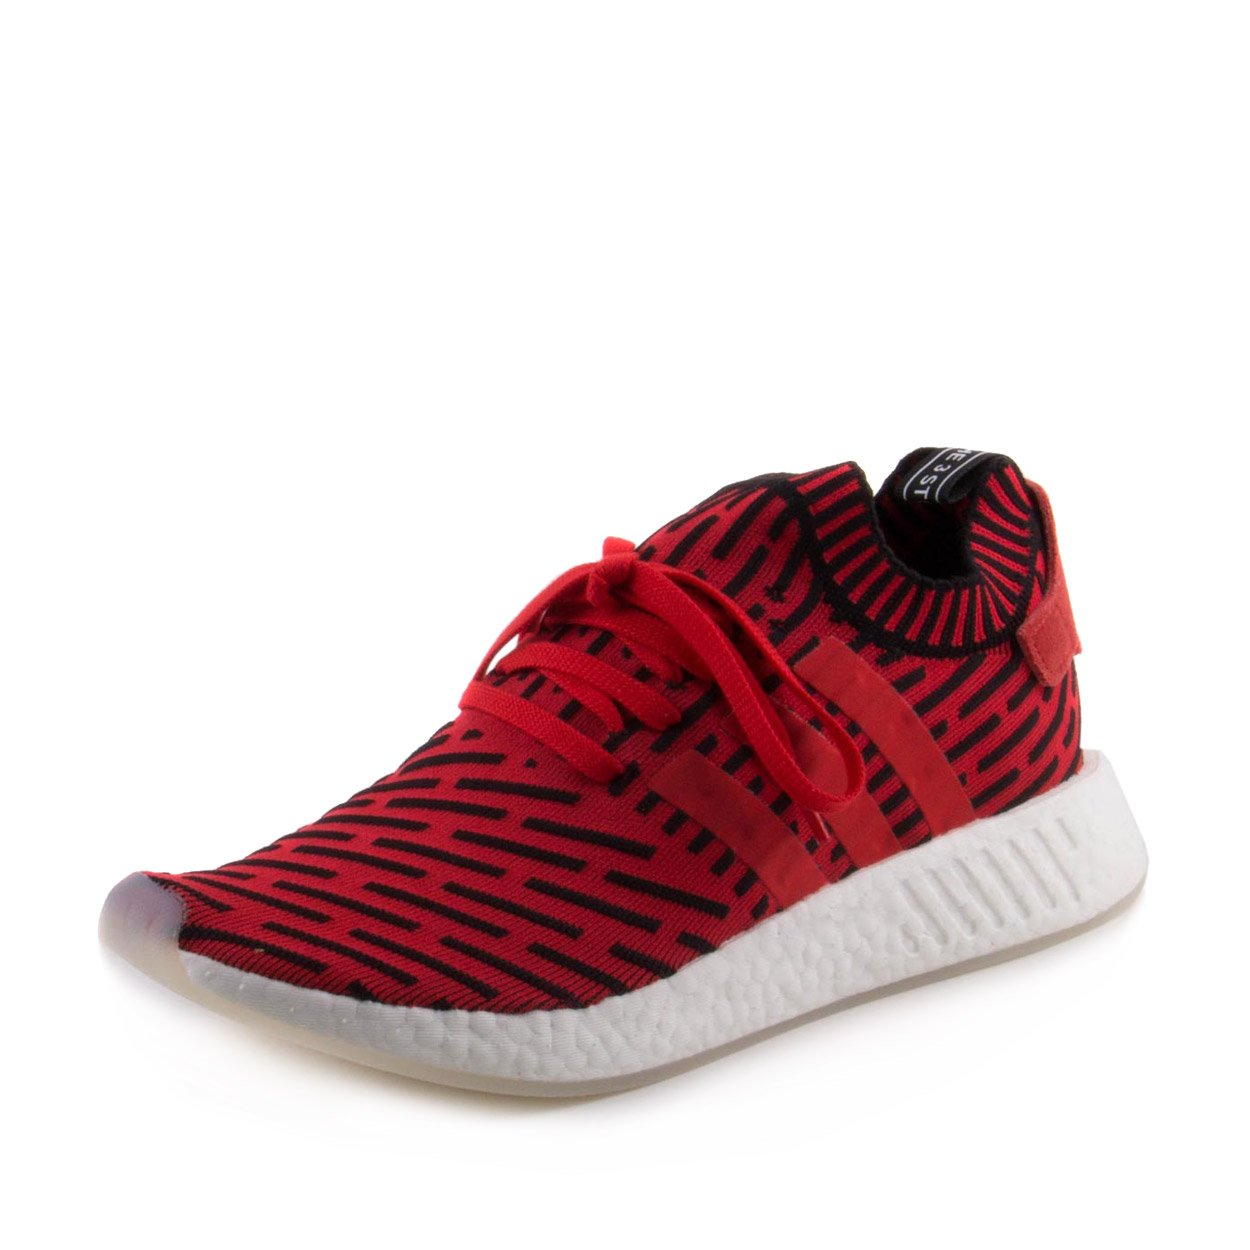 promo code b0dc8 cce7b adidas NMD R2 Primeknit Mens in Core Red/Running White, 11